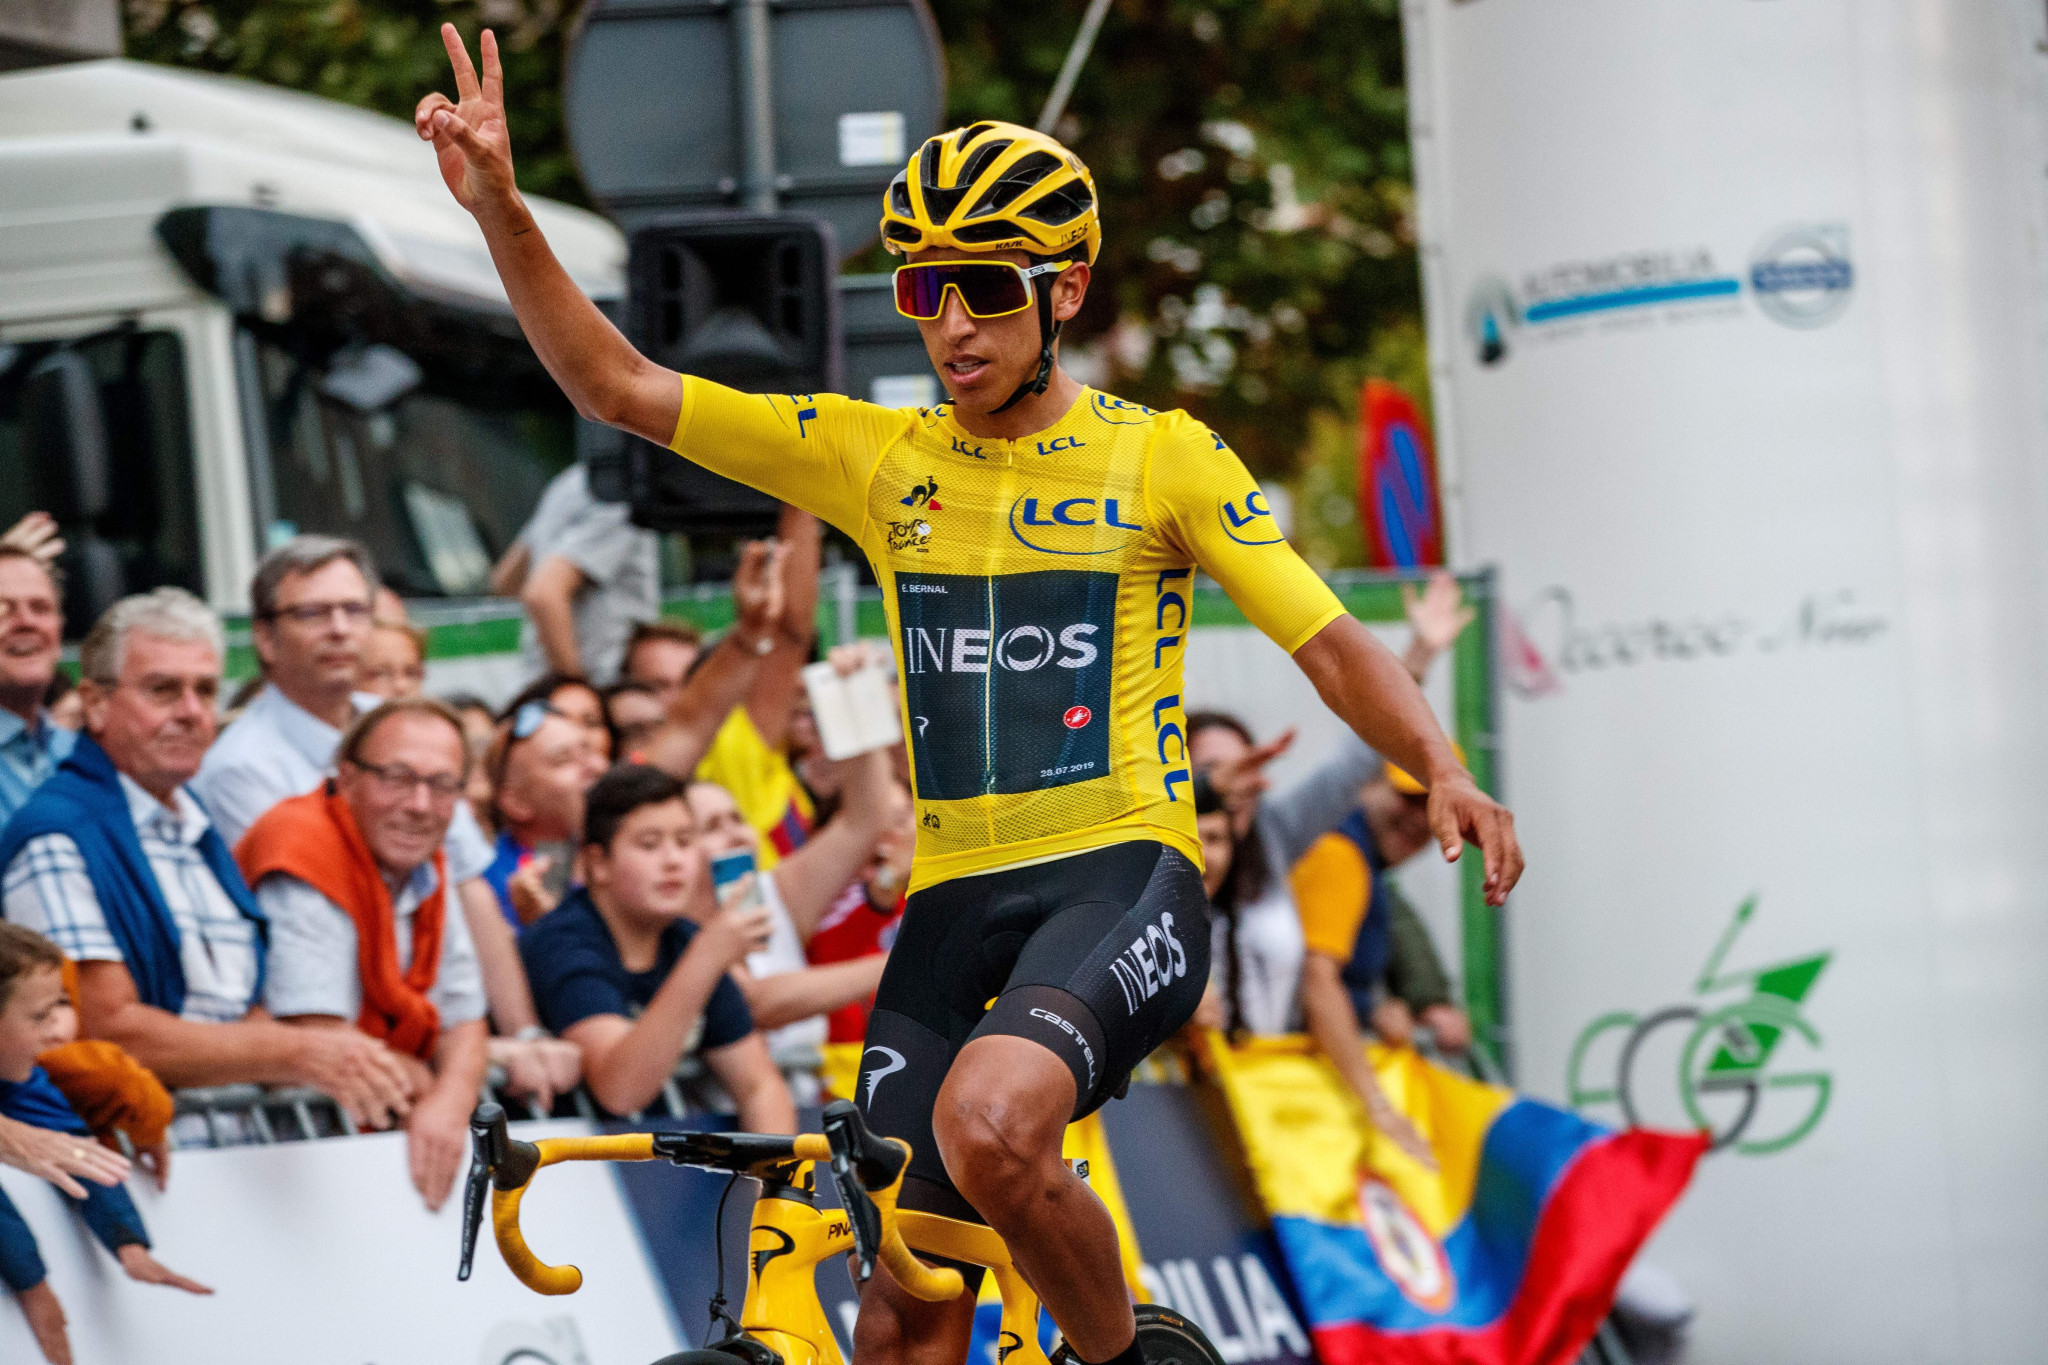 Tour de France champion Egan Bernal will be among the field when the 2019 UCI World Tour continues tomorrow with the Clásica de San Sebastián in Spain ©Getty Images